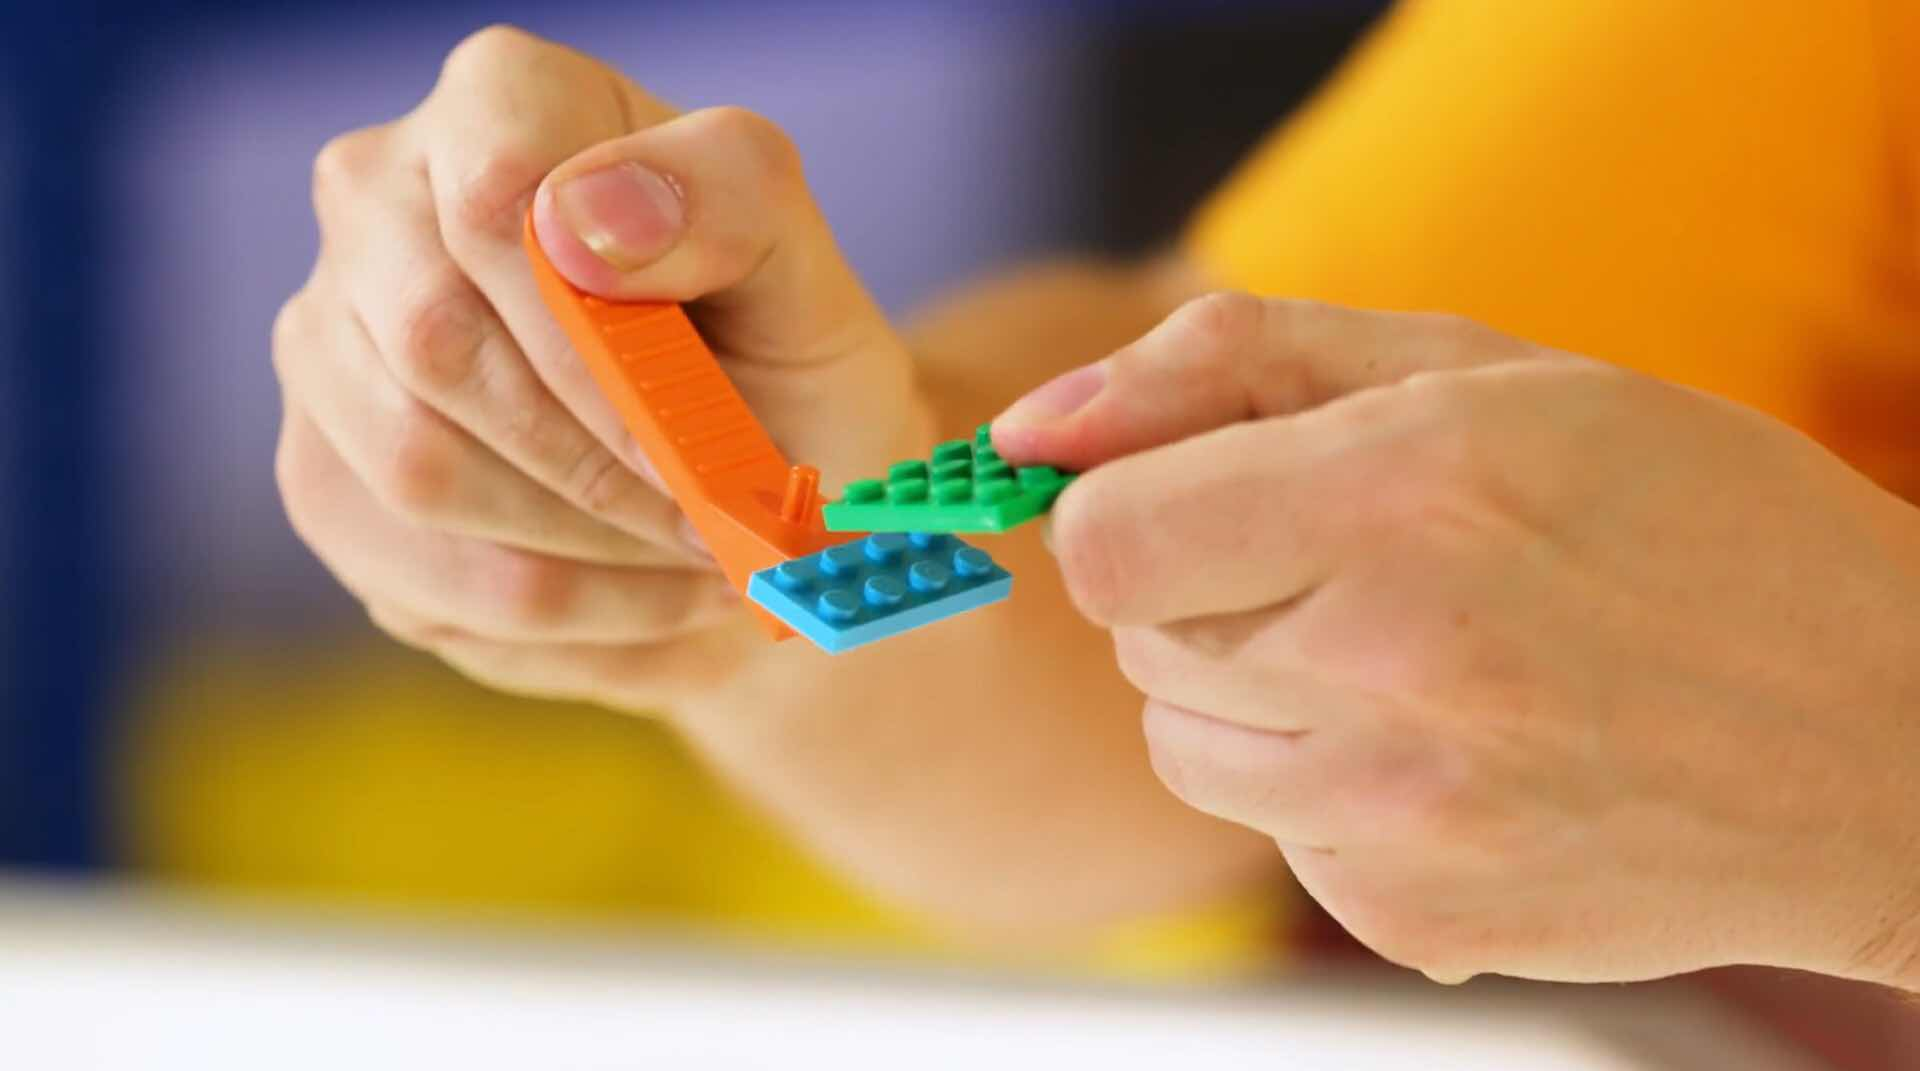 LEGO brick separator tool. ($6 for a pack of 8)